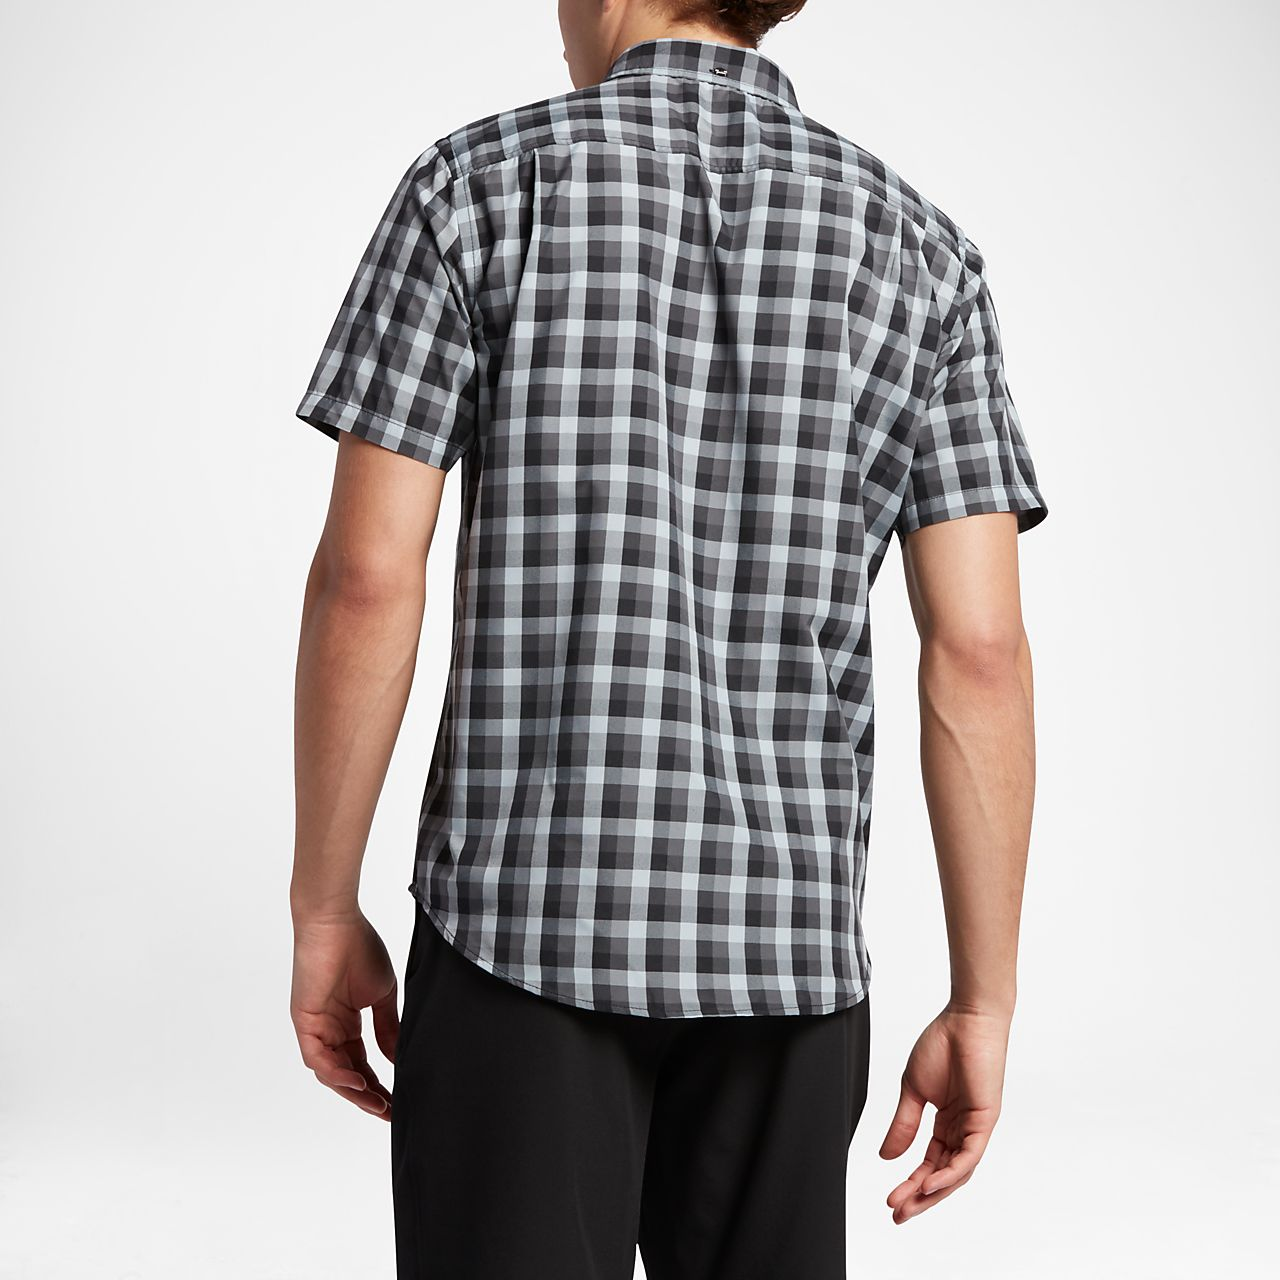 ... Hurley Dri-FIT Havoc Men's Short Sleeve Shirt